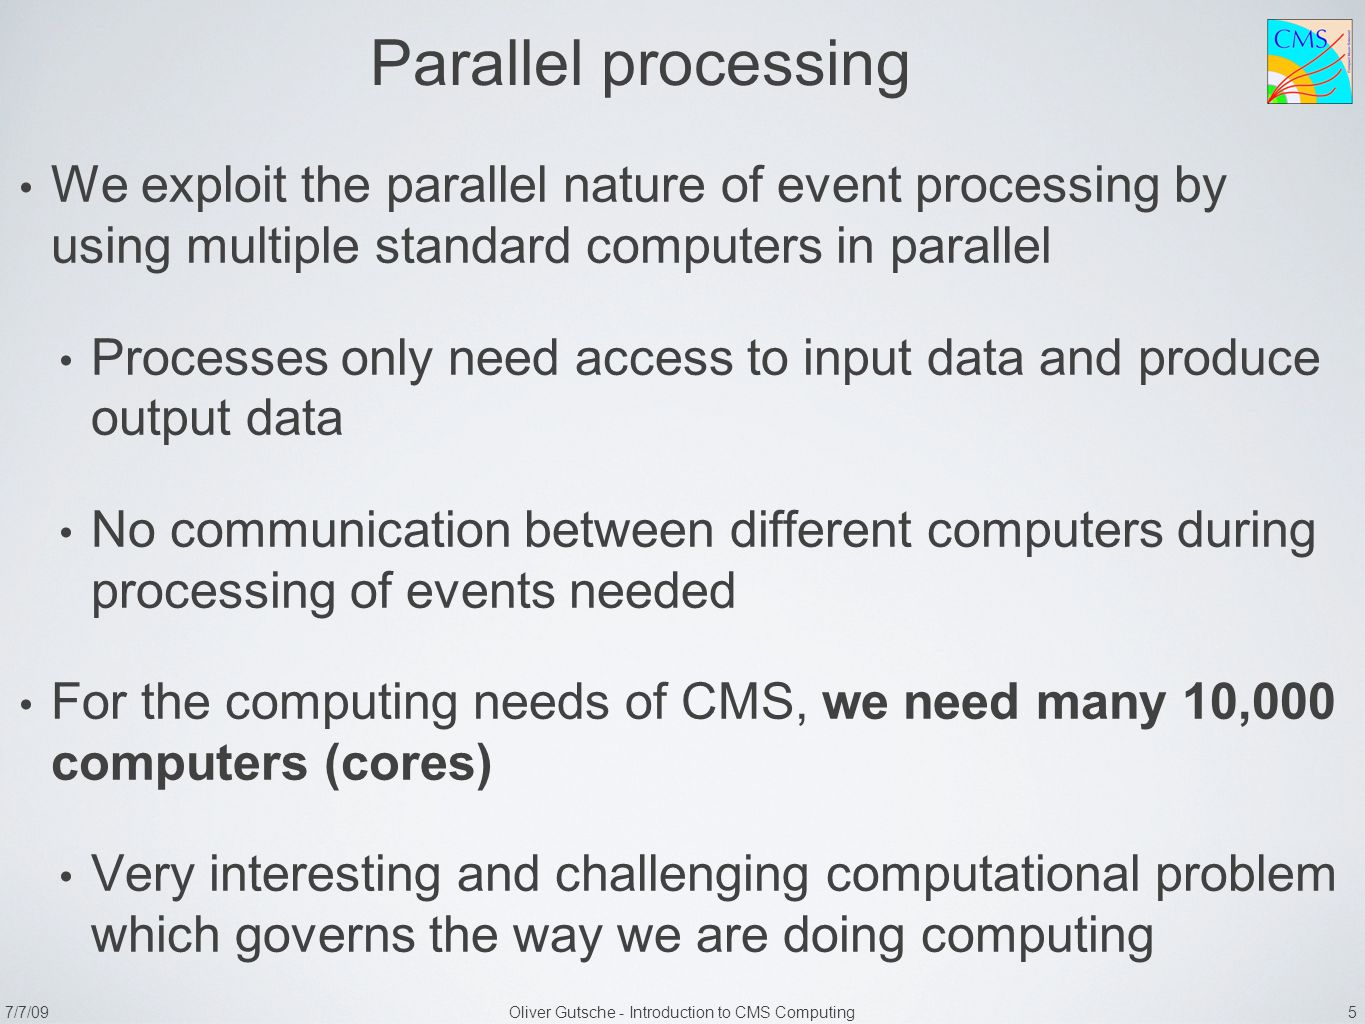 7/7/09Oliver Gutsche - Introduction to CMS Computing 5 Parallel processing We exploit the parallel nature of event processing by using multiple standard computers in parallel Processes only need access to input data and produce output data No communication between different computers during processing of events needed For the computing needs of CMS, we need many 10,000 computers (cores) Very interesting and challenging computational problem which governs the way we are doing computing